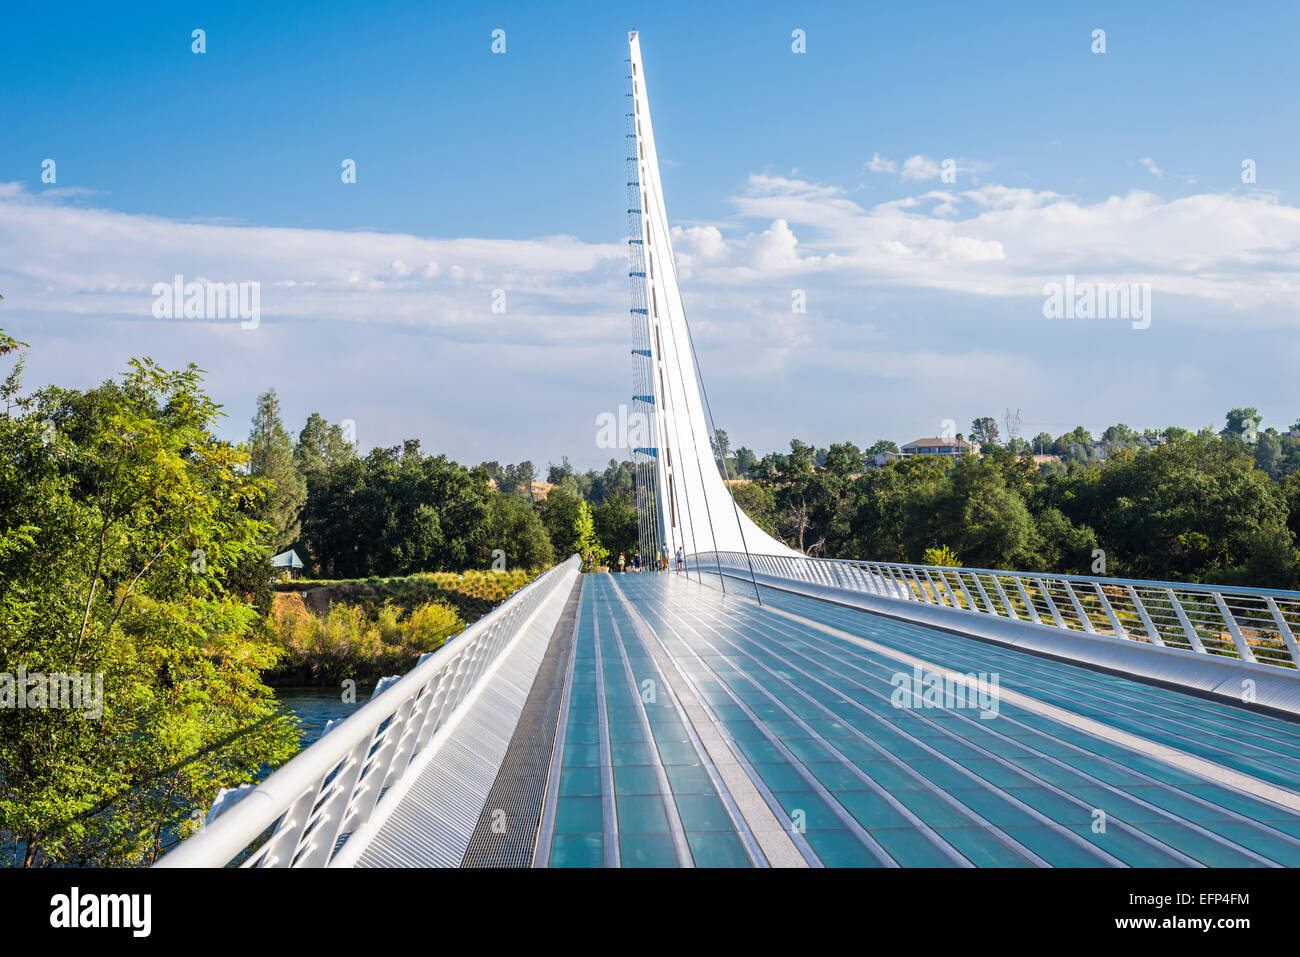 The Sundial Bridge at Turtle Bay.   Redding, California, United States. - Stock Image